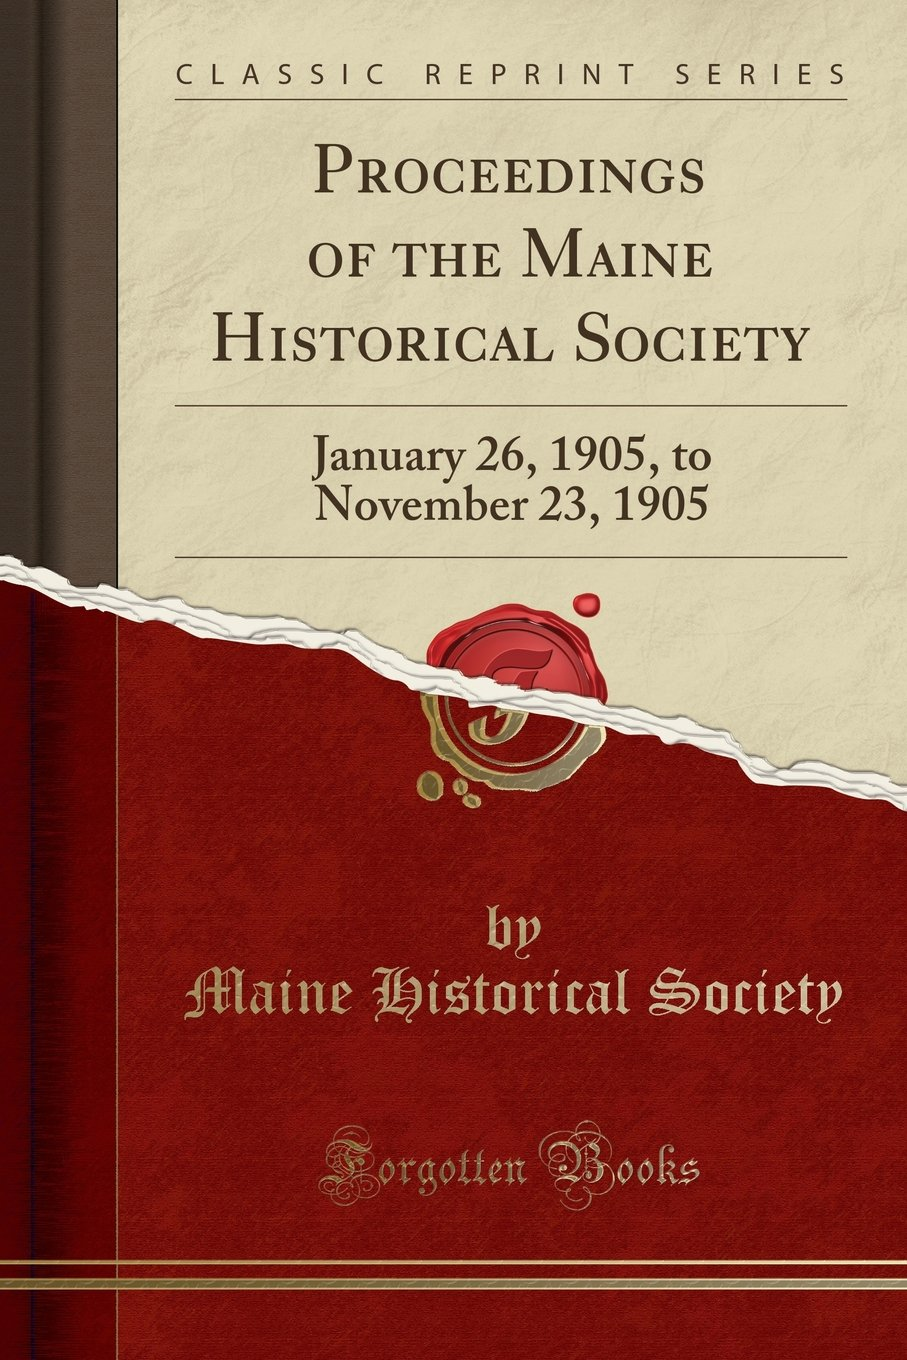 Download Proceedings of the Maine Historical Society: January 26, 1905, to November 23, 1905 (Classic Reprint) pdf